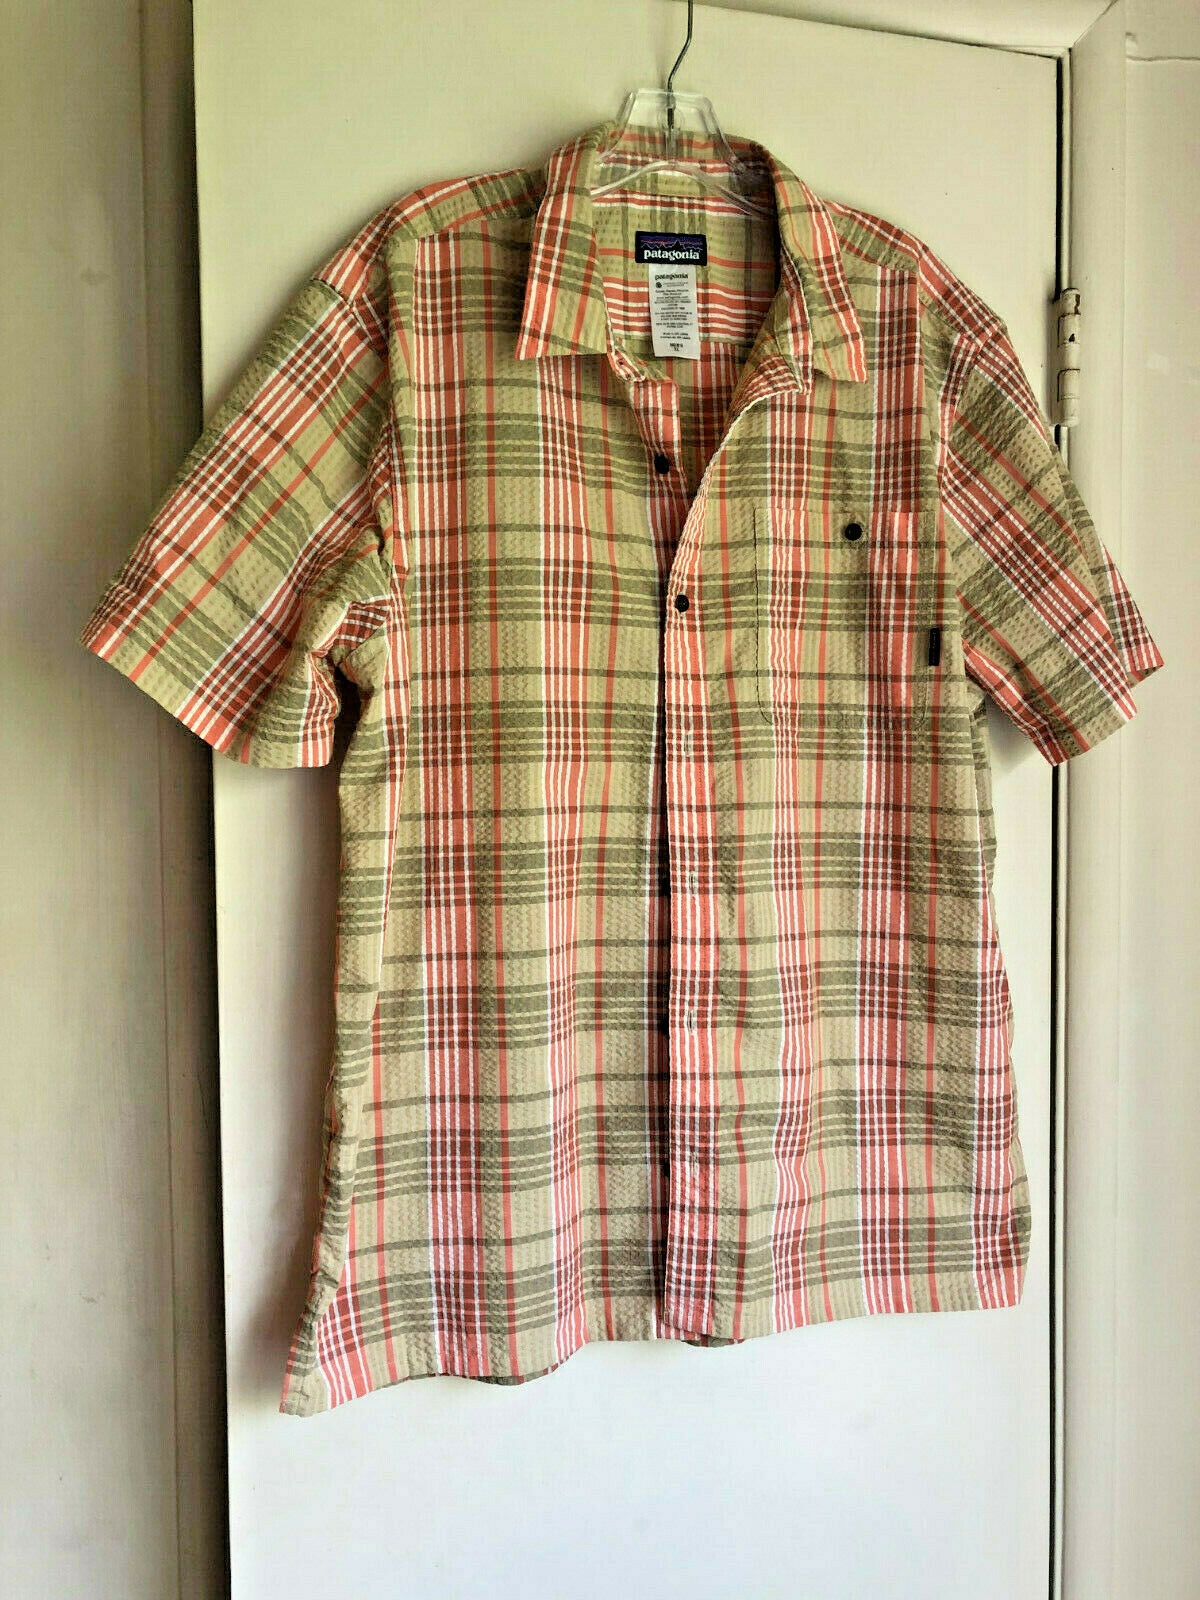 Patagonia Men's orange and gold Plaid Short Sleeve Cotton Shirt - Size XL